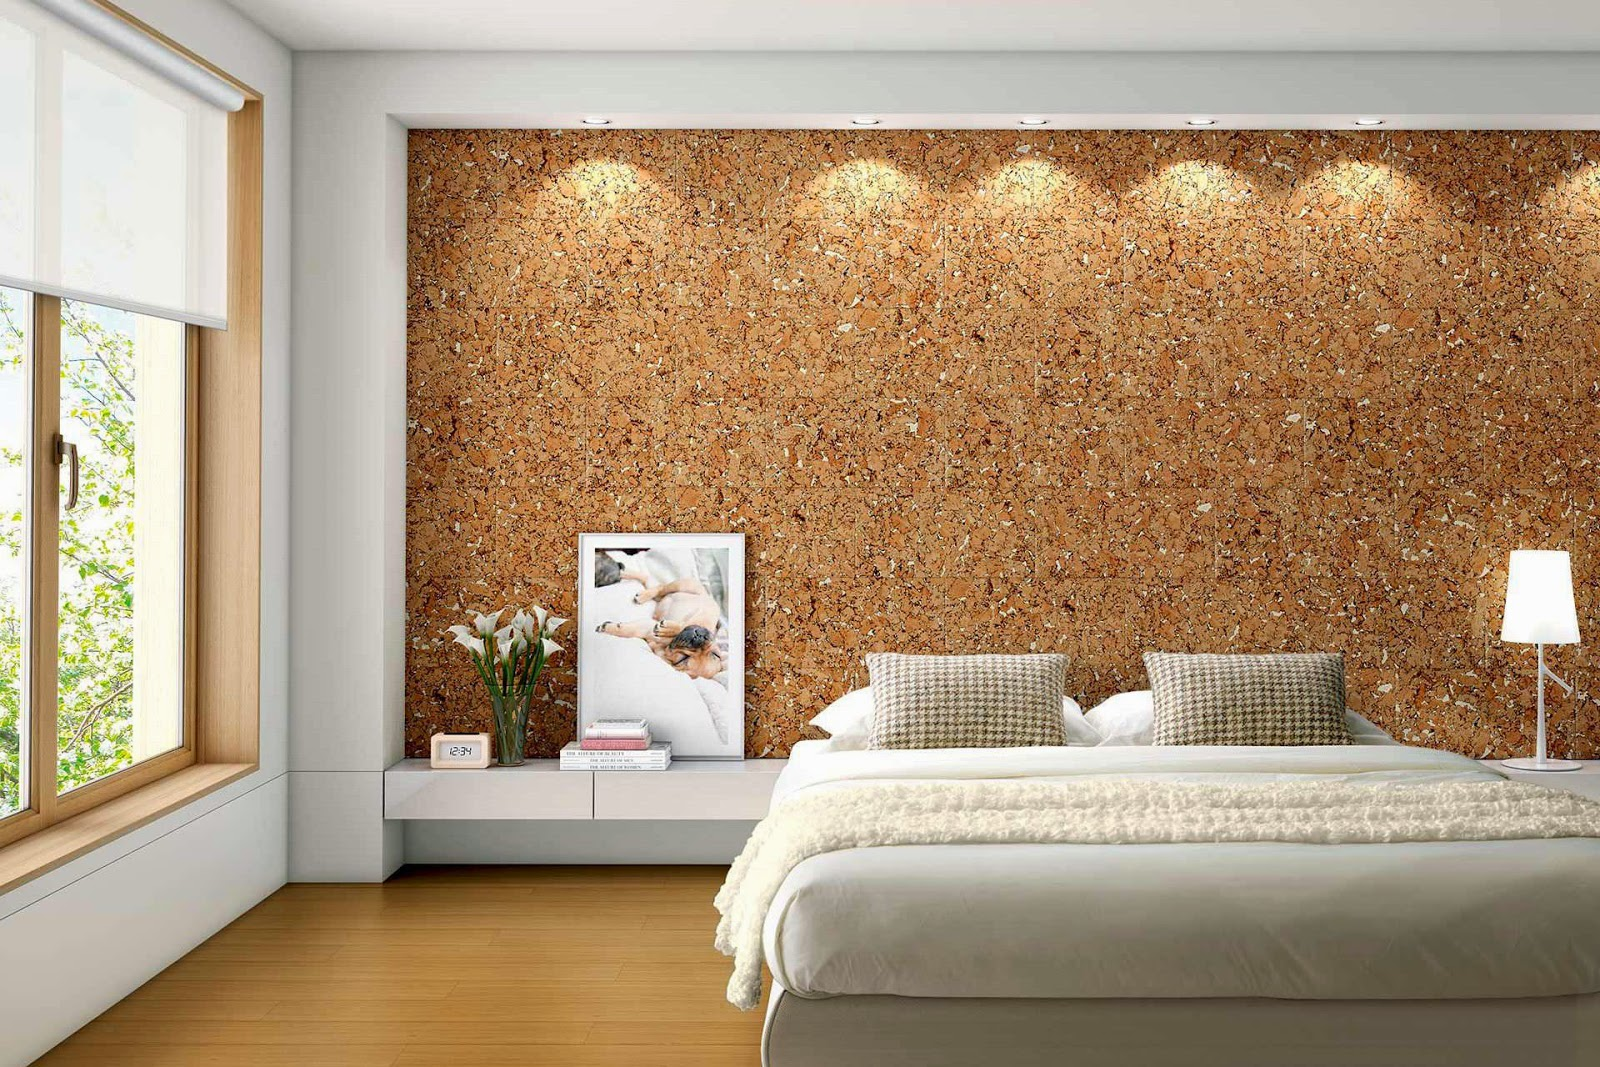 Le li ge mural un isolant efficace et d coratif d co etc for Isolation d une chambre